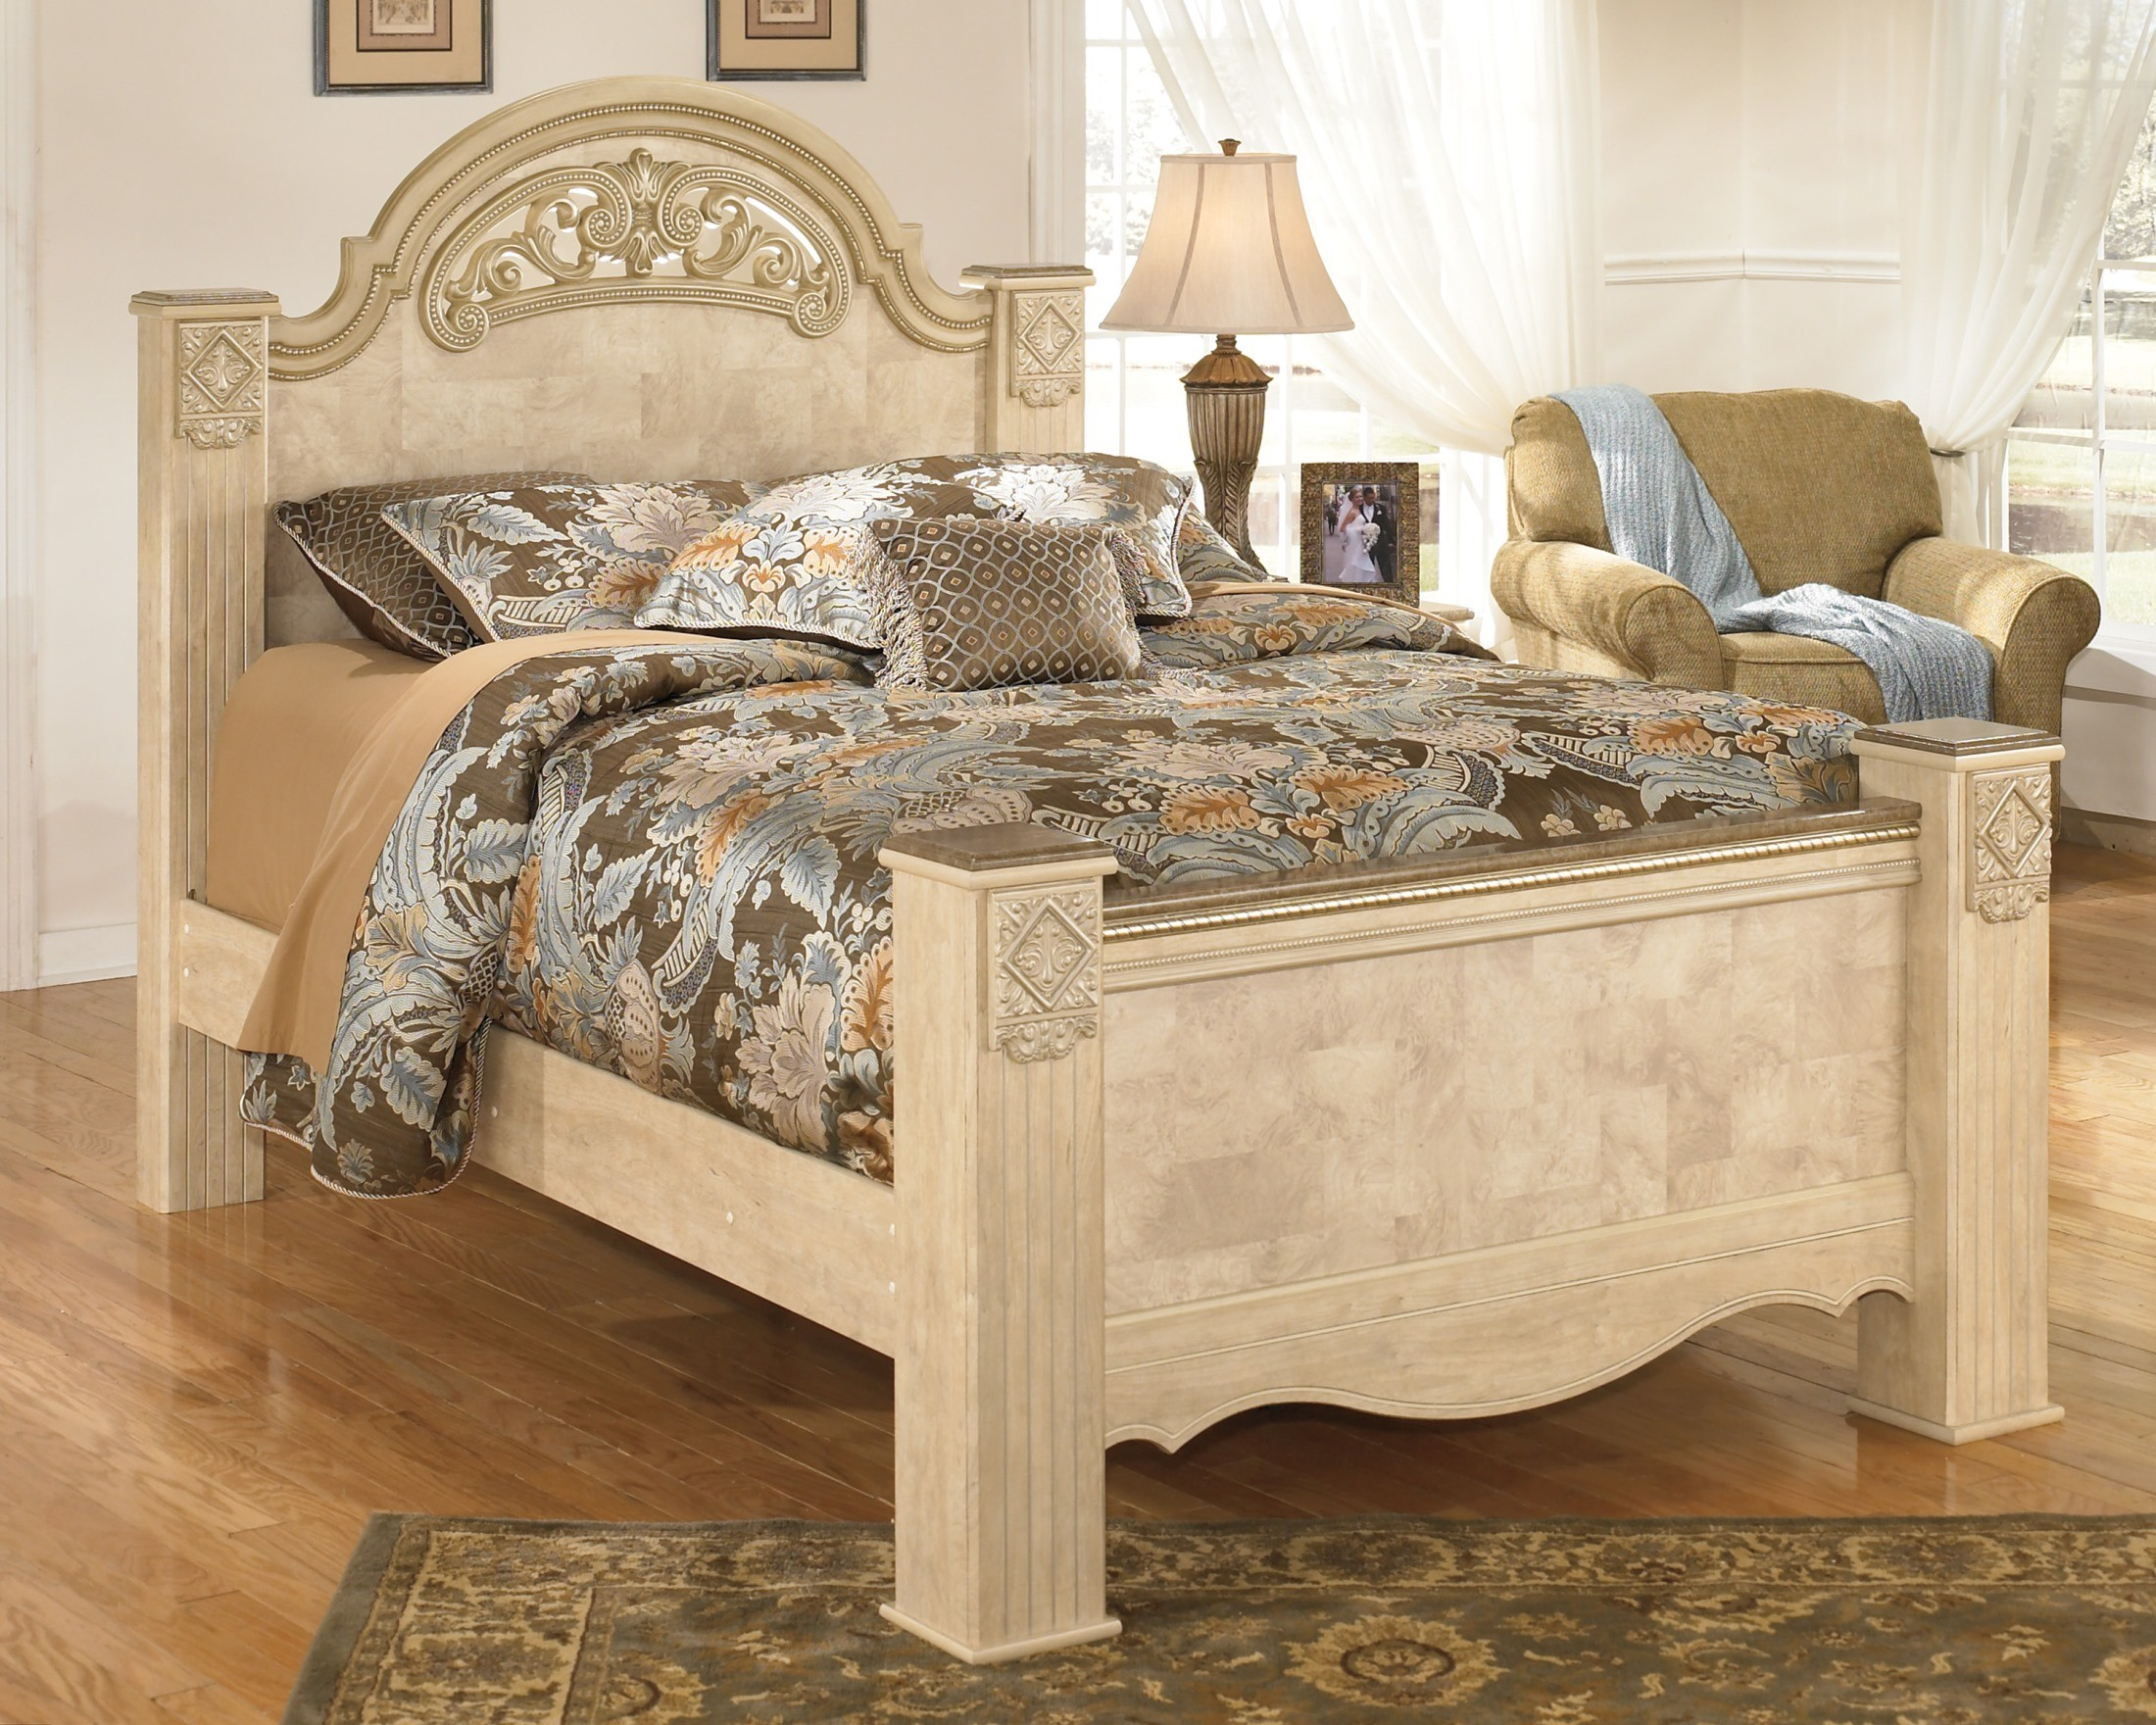 Saveaha Poster Bedroom Set From Ashley B346 67 64 98 Coleman Furniture